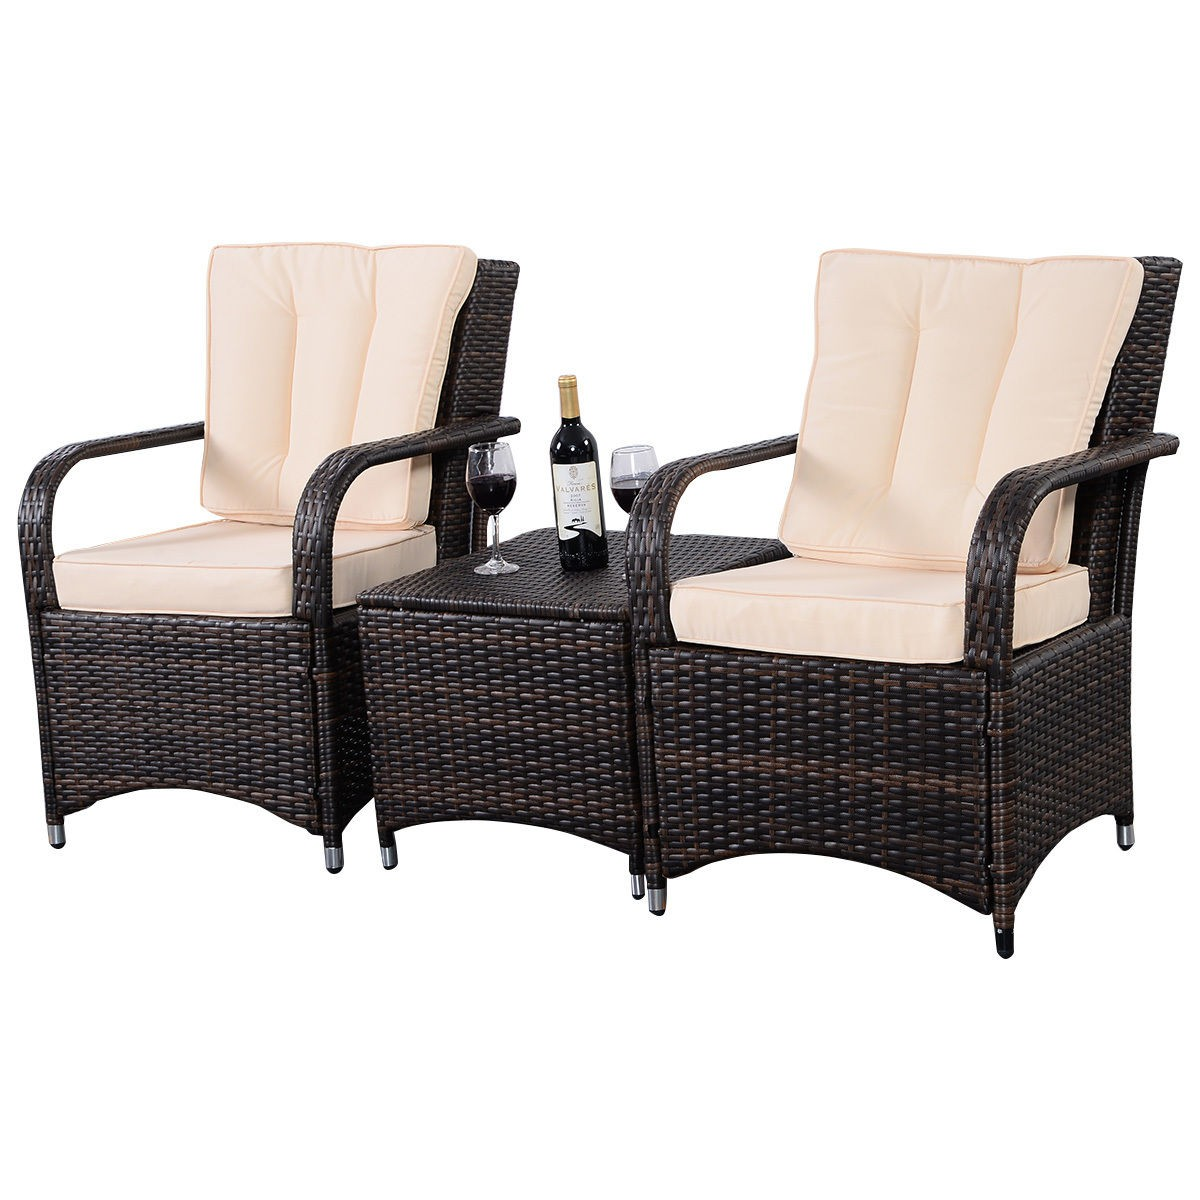 Wicker Rattan Chair 3 Qualited Patio Pe Rattan Wicker Furniture Set Outdoor